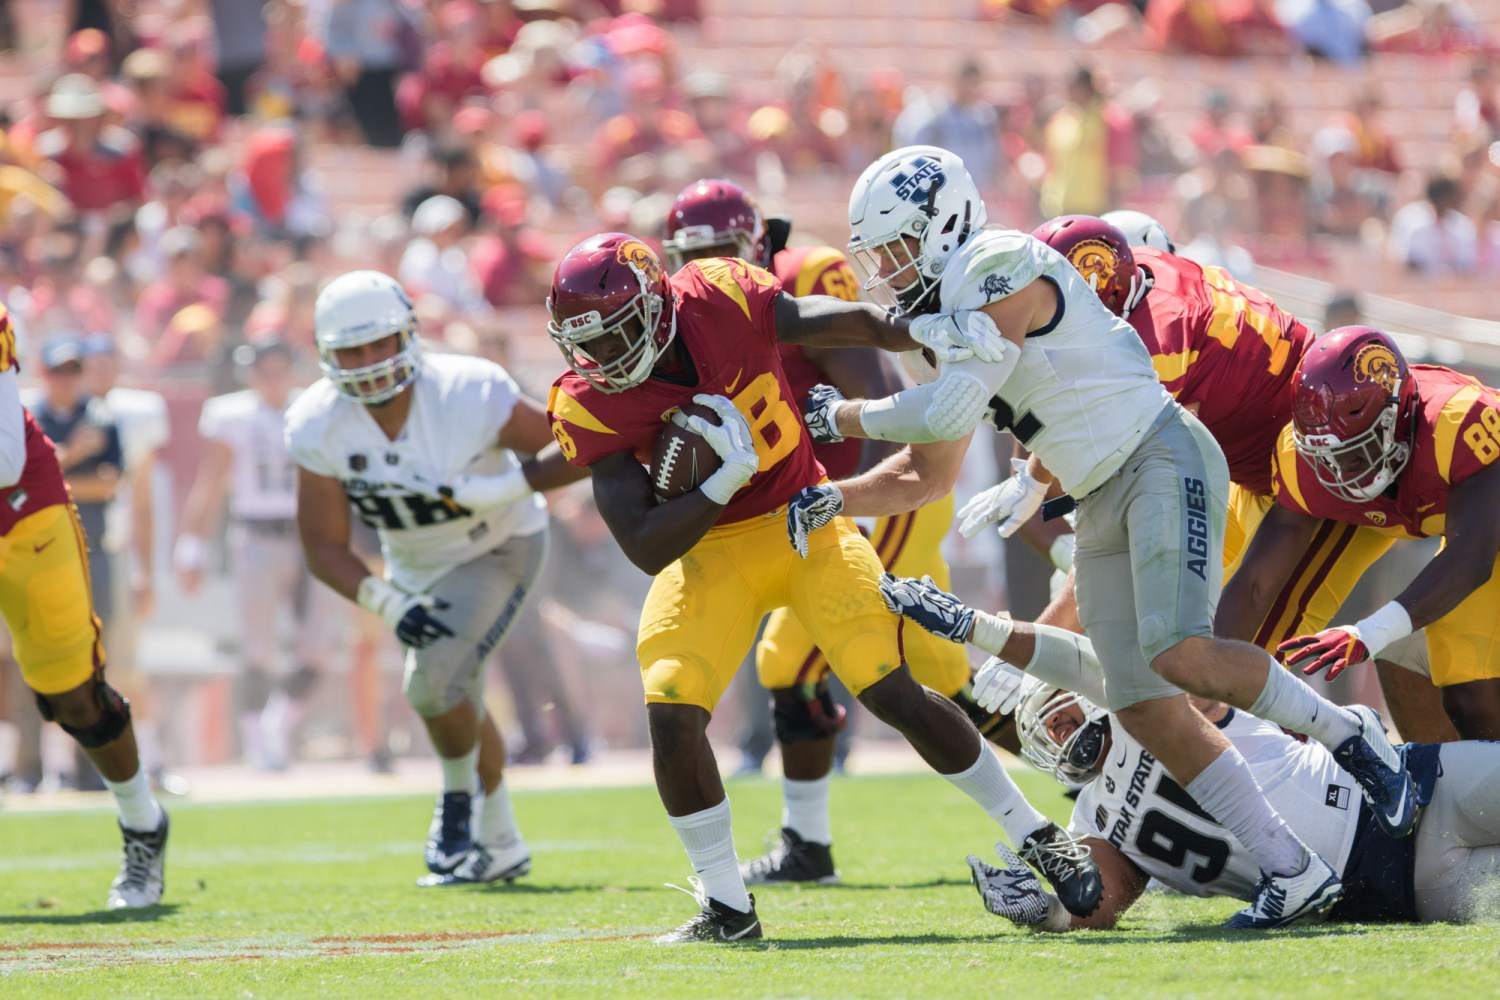 Nick Entin | Daily Trojan Redshirt freshman tight end Daniel Imatorbhebhe with his only catch of the game, a 7-yard gain.